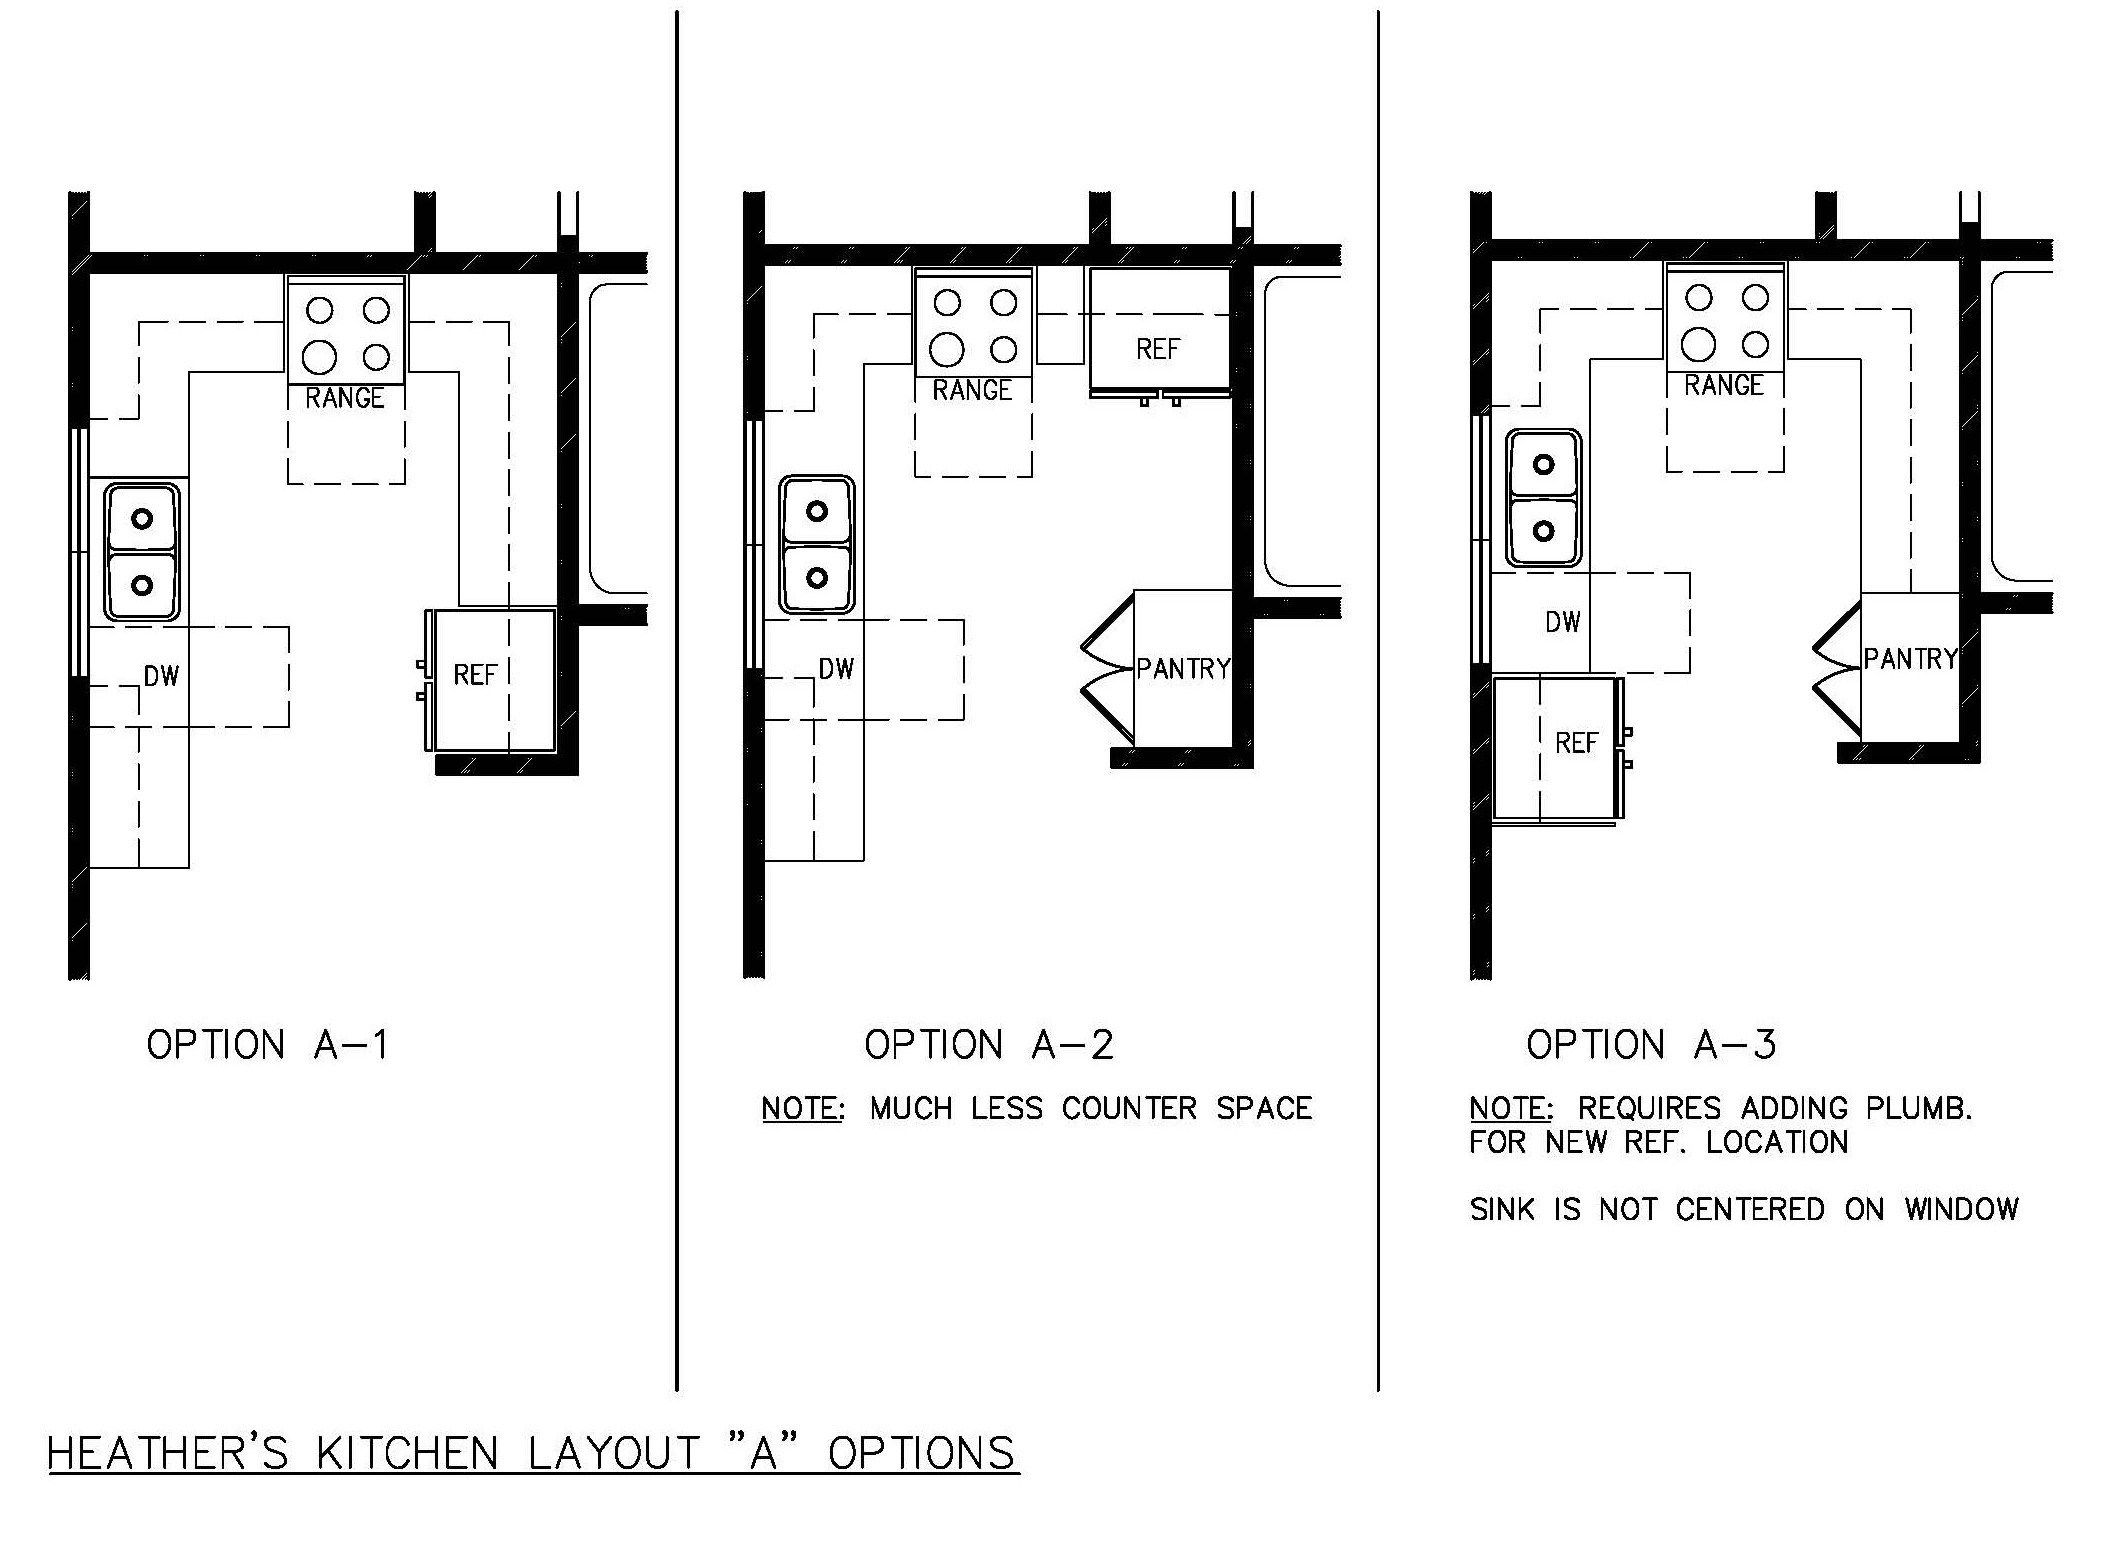 Mutfak Kucuk Tasarimlar Mizanpaj Resimleri U Mizanpaj Tasarimi Benimmulku Small Kitchen Design Plans Small Kitchen Plans Best Kitchen Layout